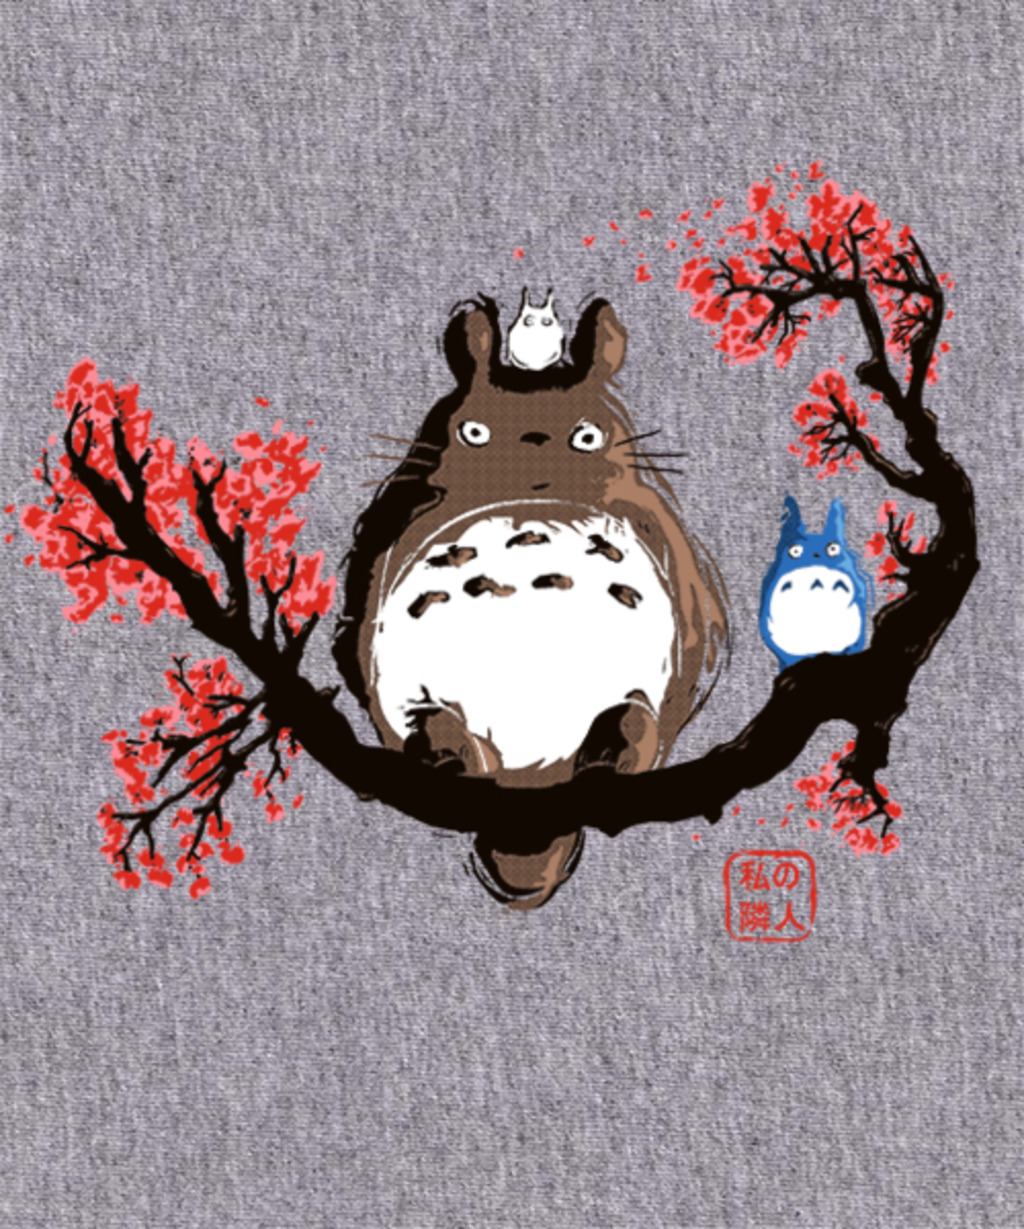 Qwertee: Traditional